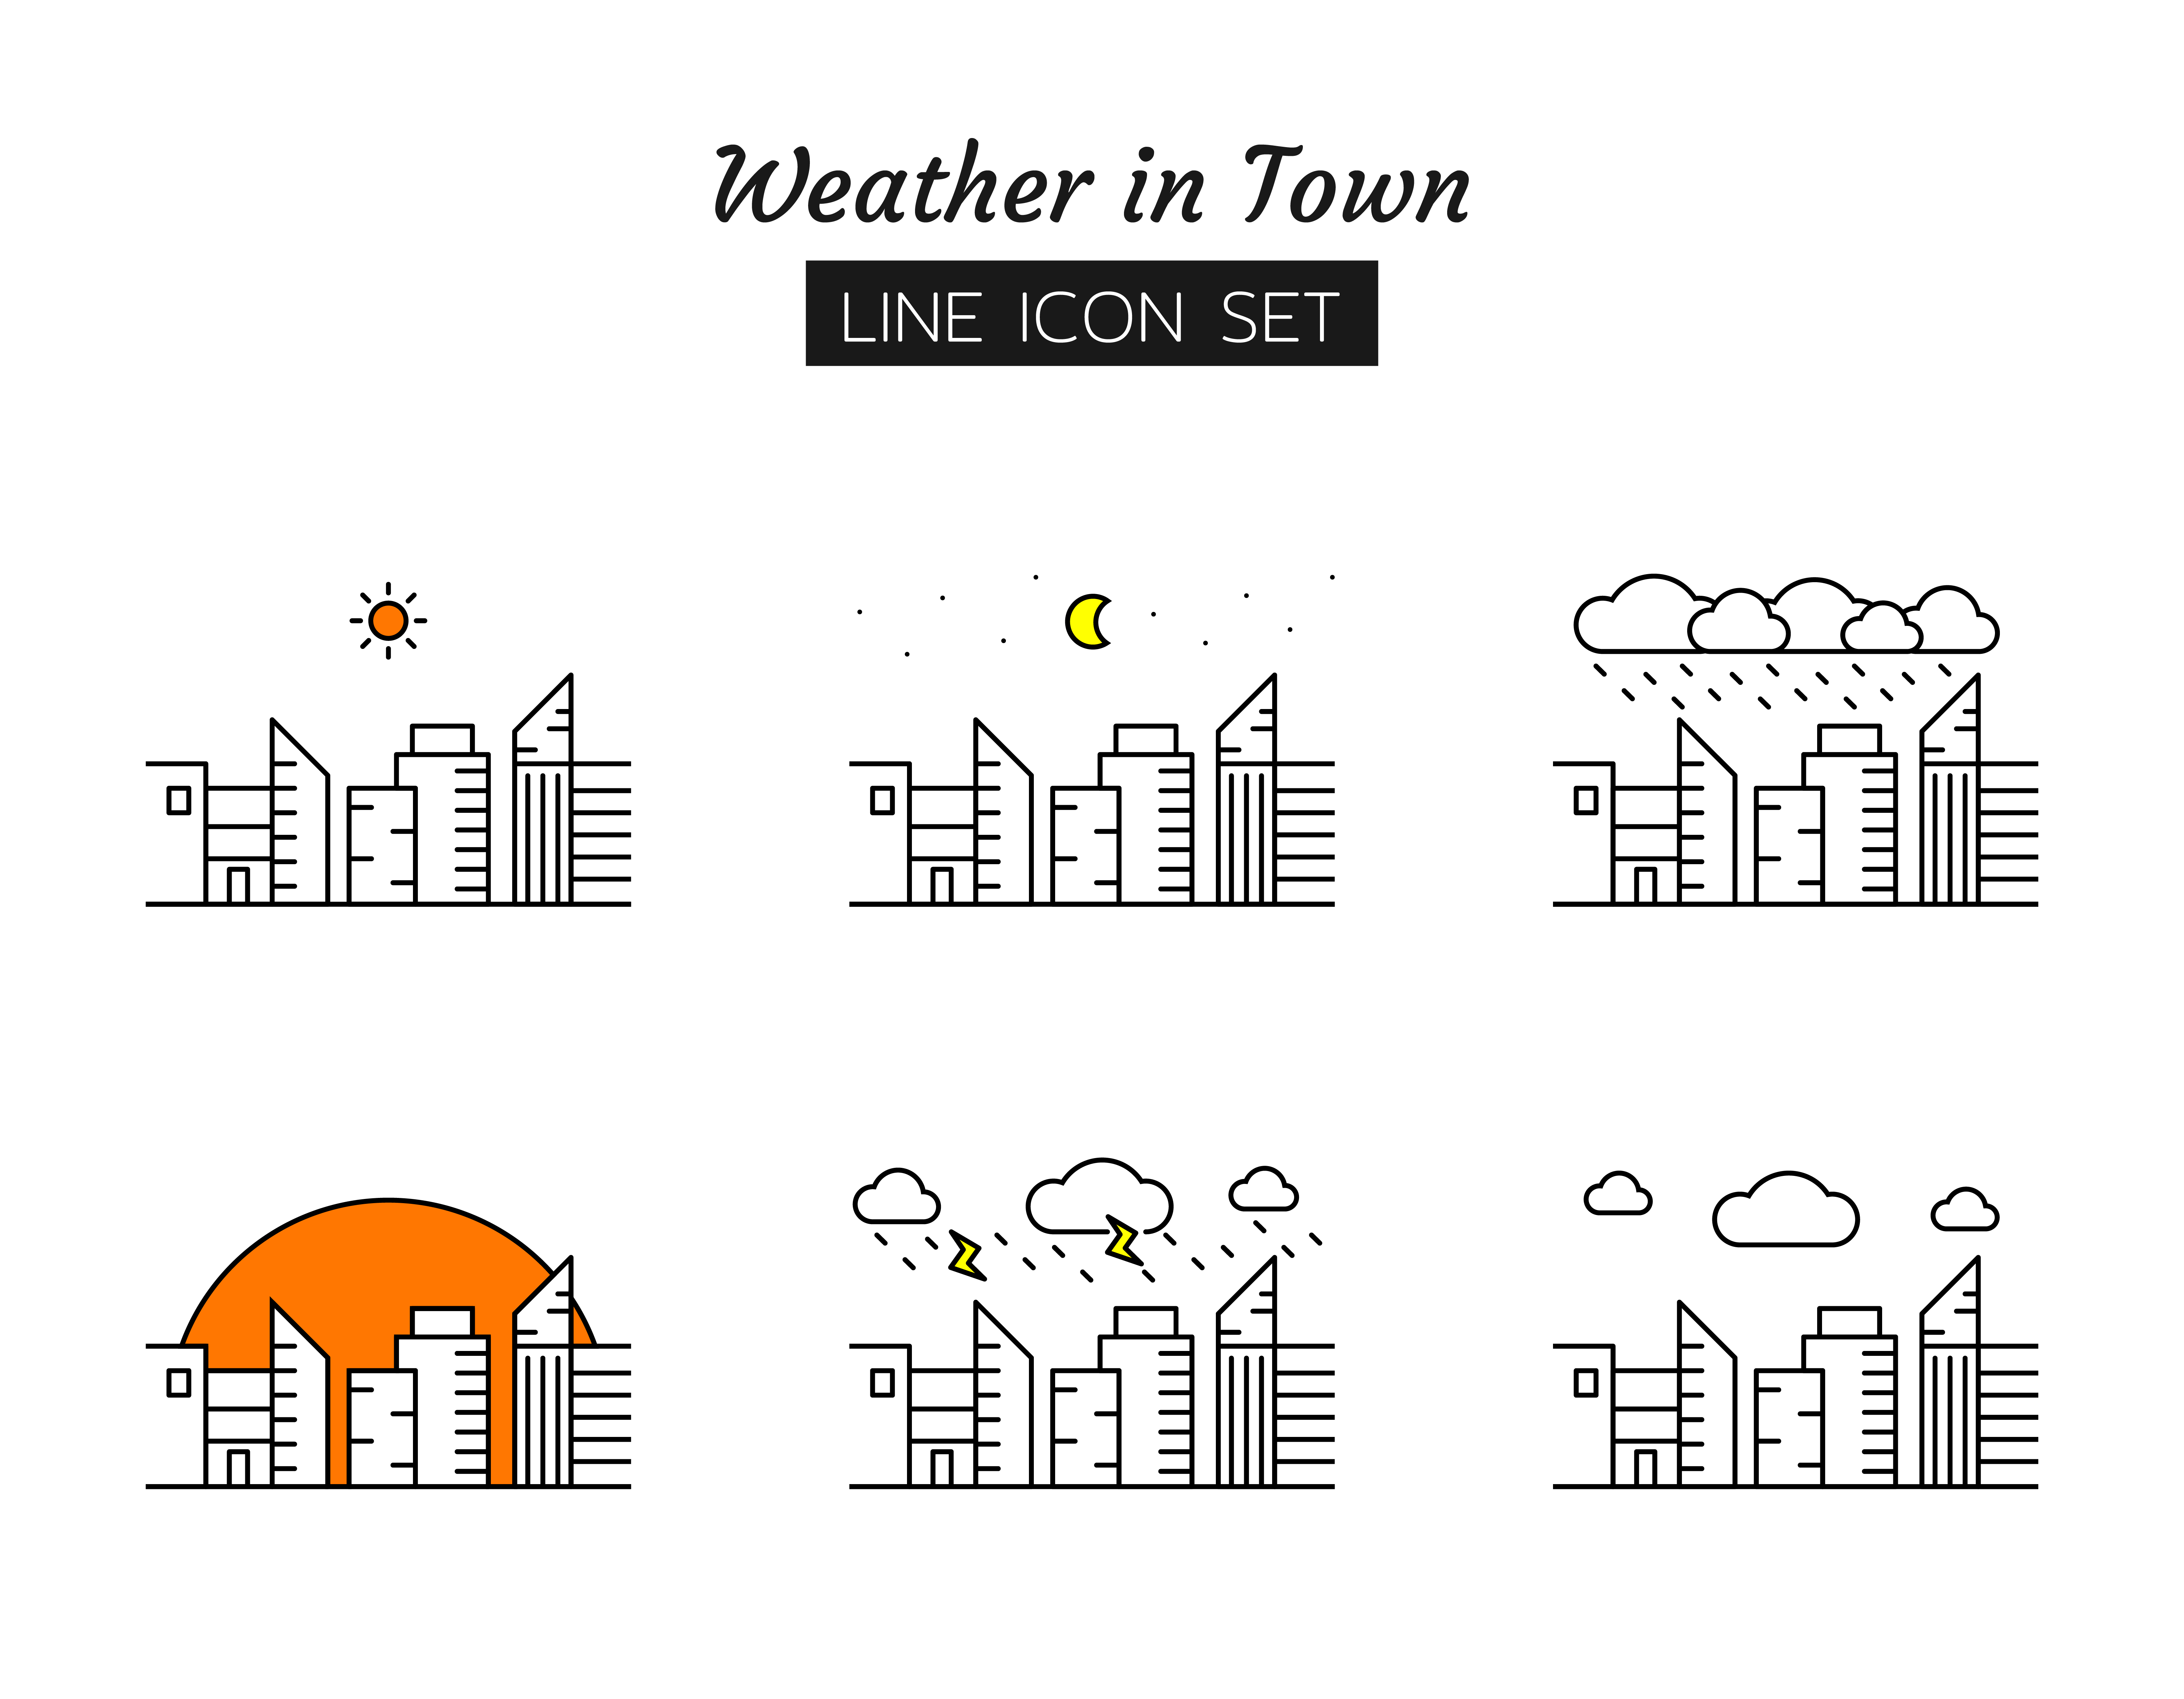 Town weather line icon symbol set